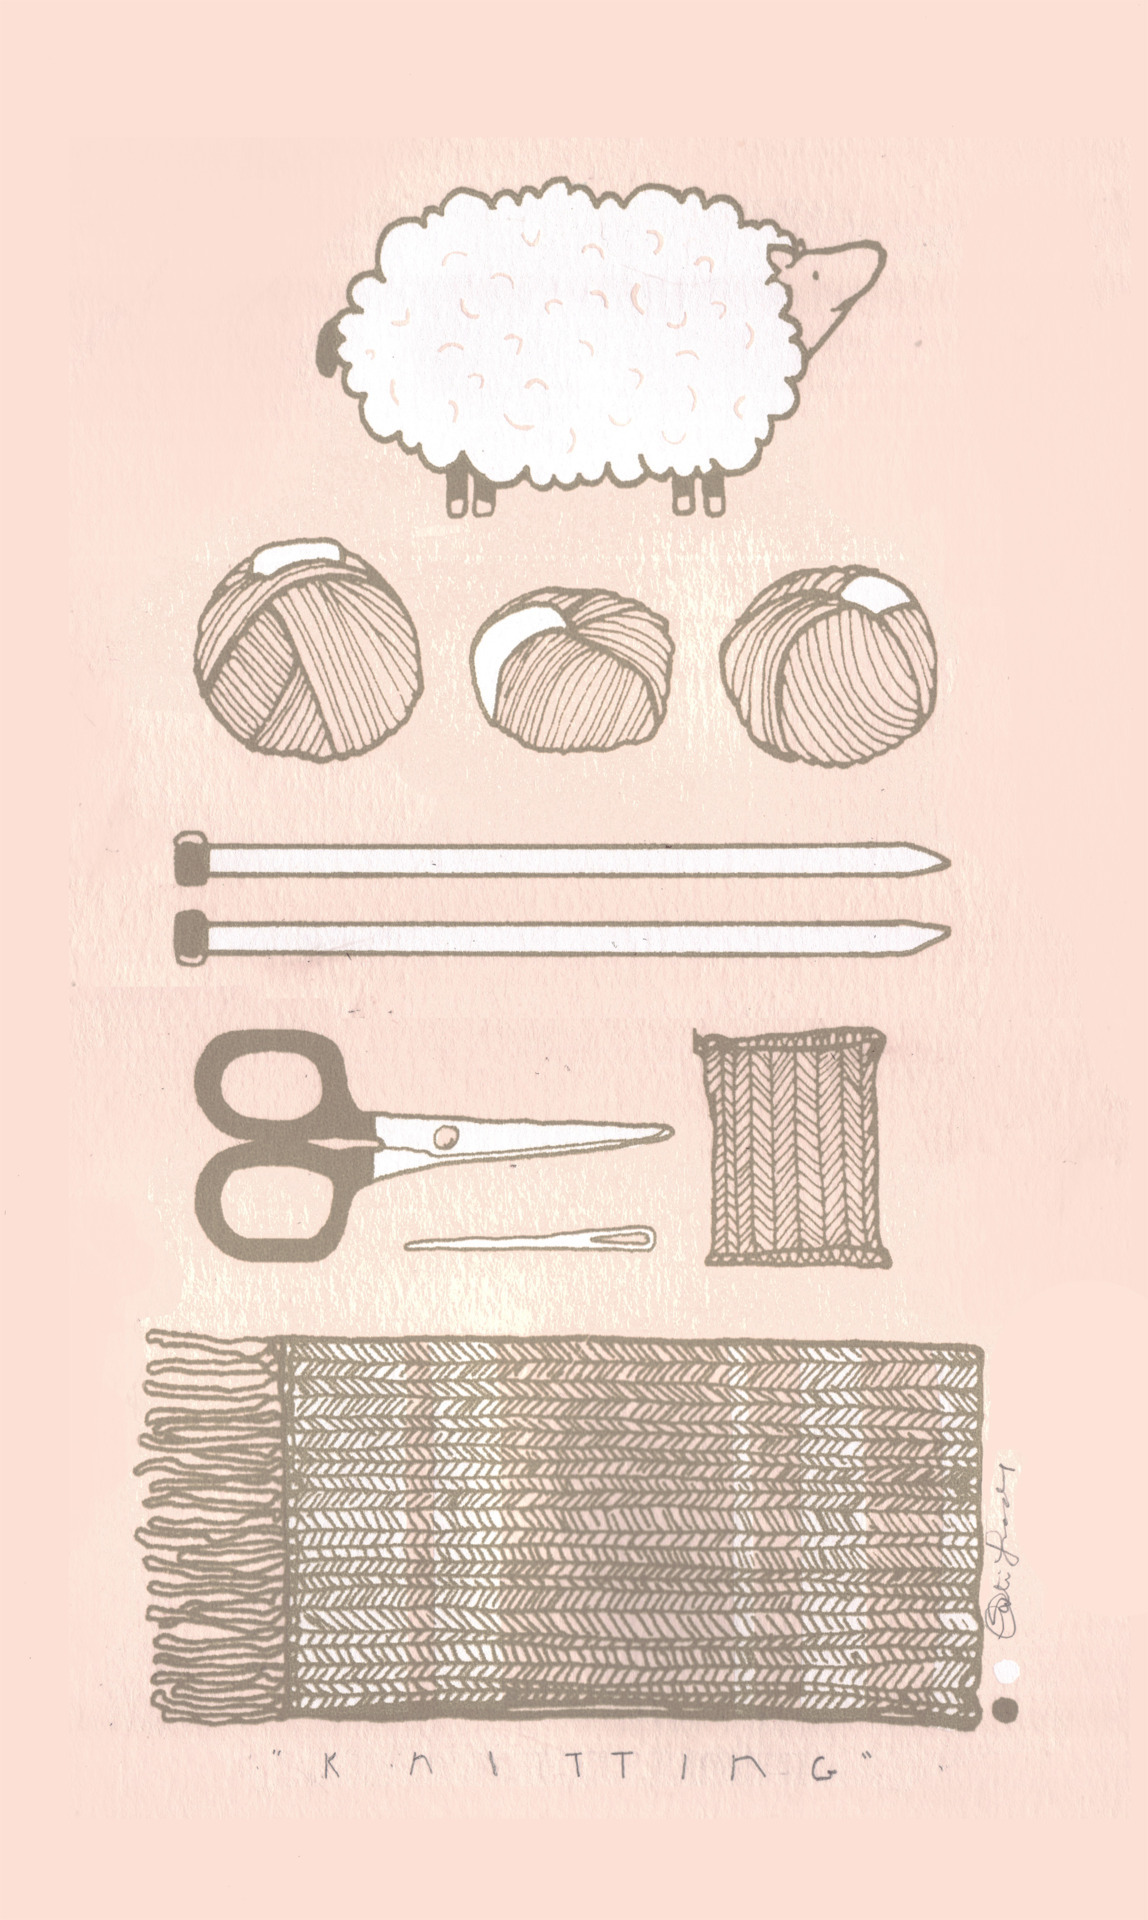 thingsorganizedneatly:  SUBMISSION: knitting essentials. print by Kati Lacker.